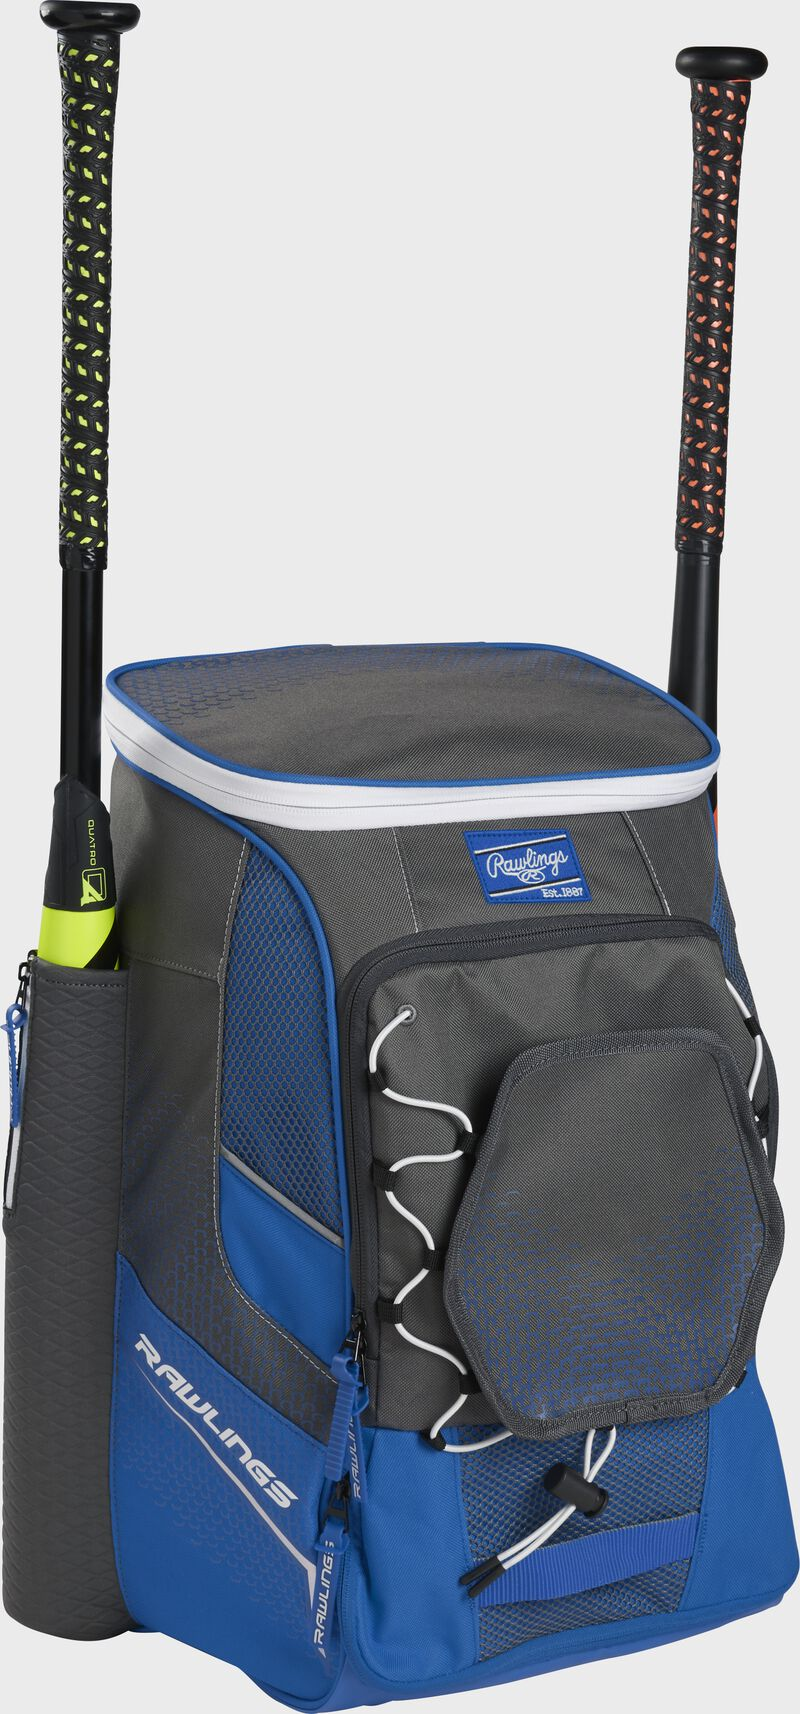 Front left angle of a royal Rawlings Impulse baseball gear backpack with two bats - SKU: IMPLSE-R